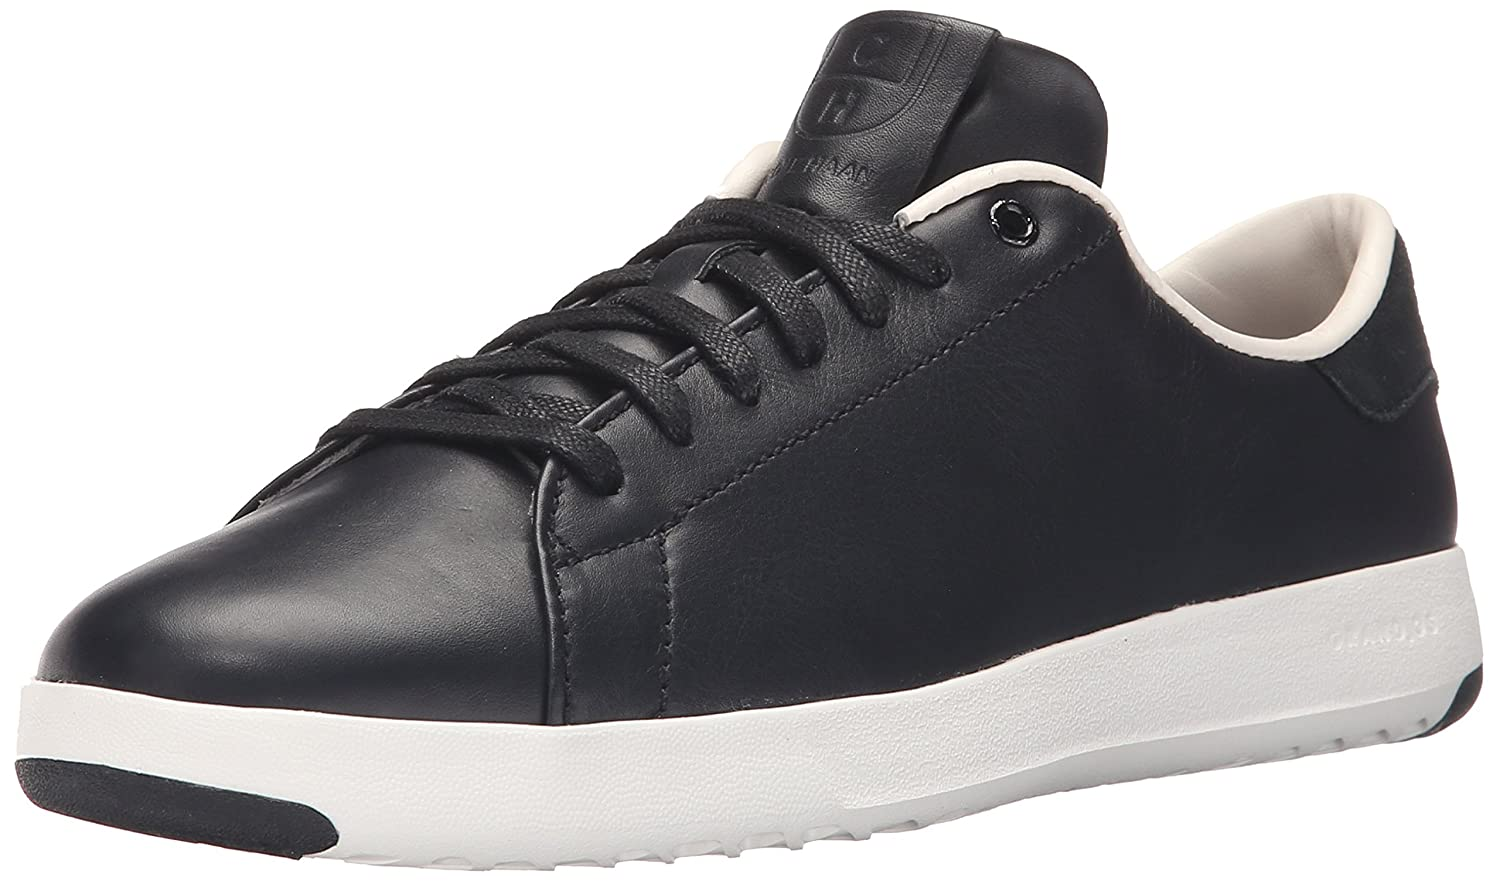 Cole Haan Women's Grandpro Tennis Leather Lace OX Fashion Sneaker B01A8HOBU4 10 B(M) US|Black/Optic White